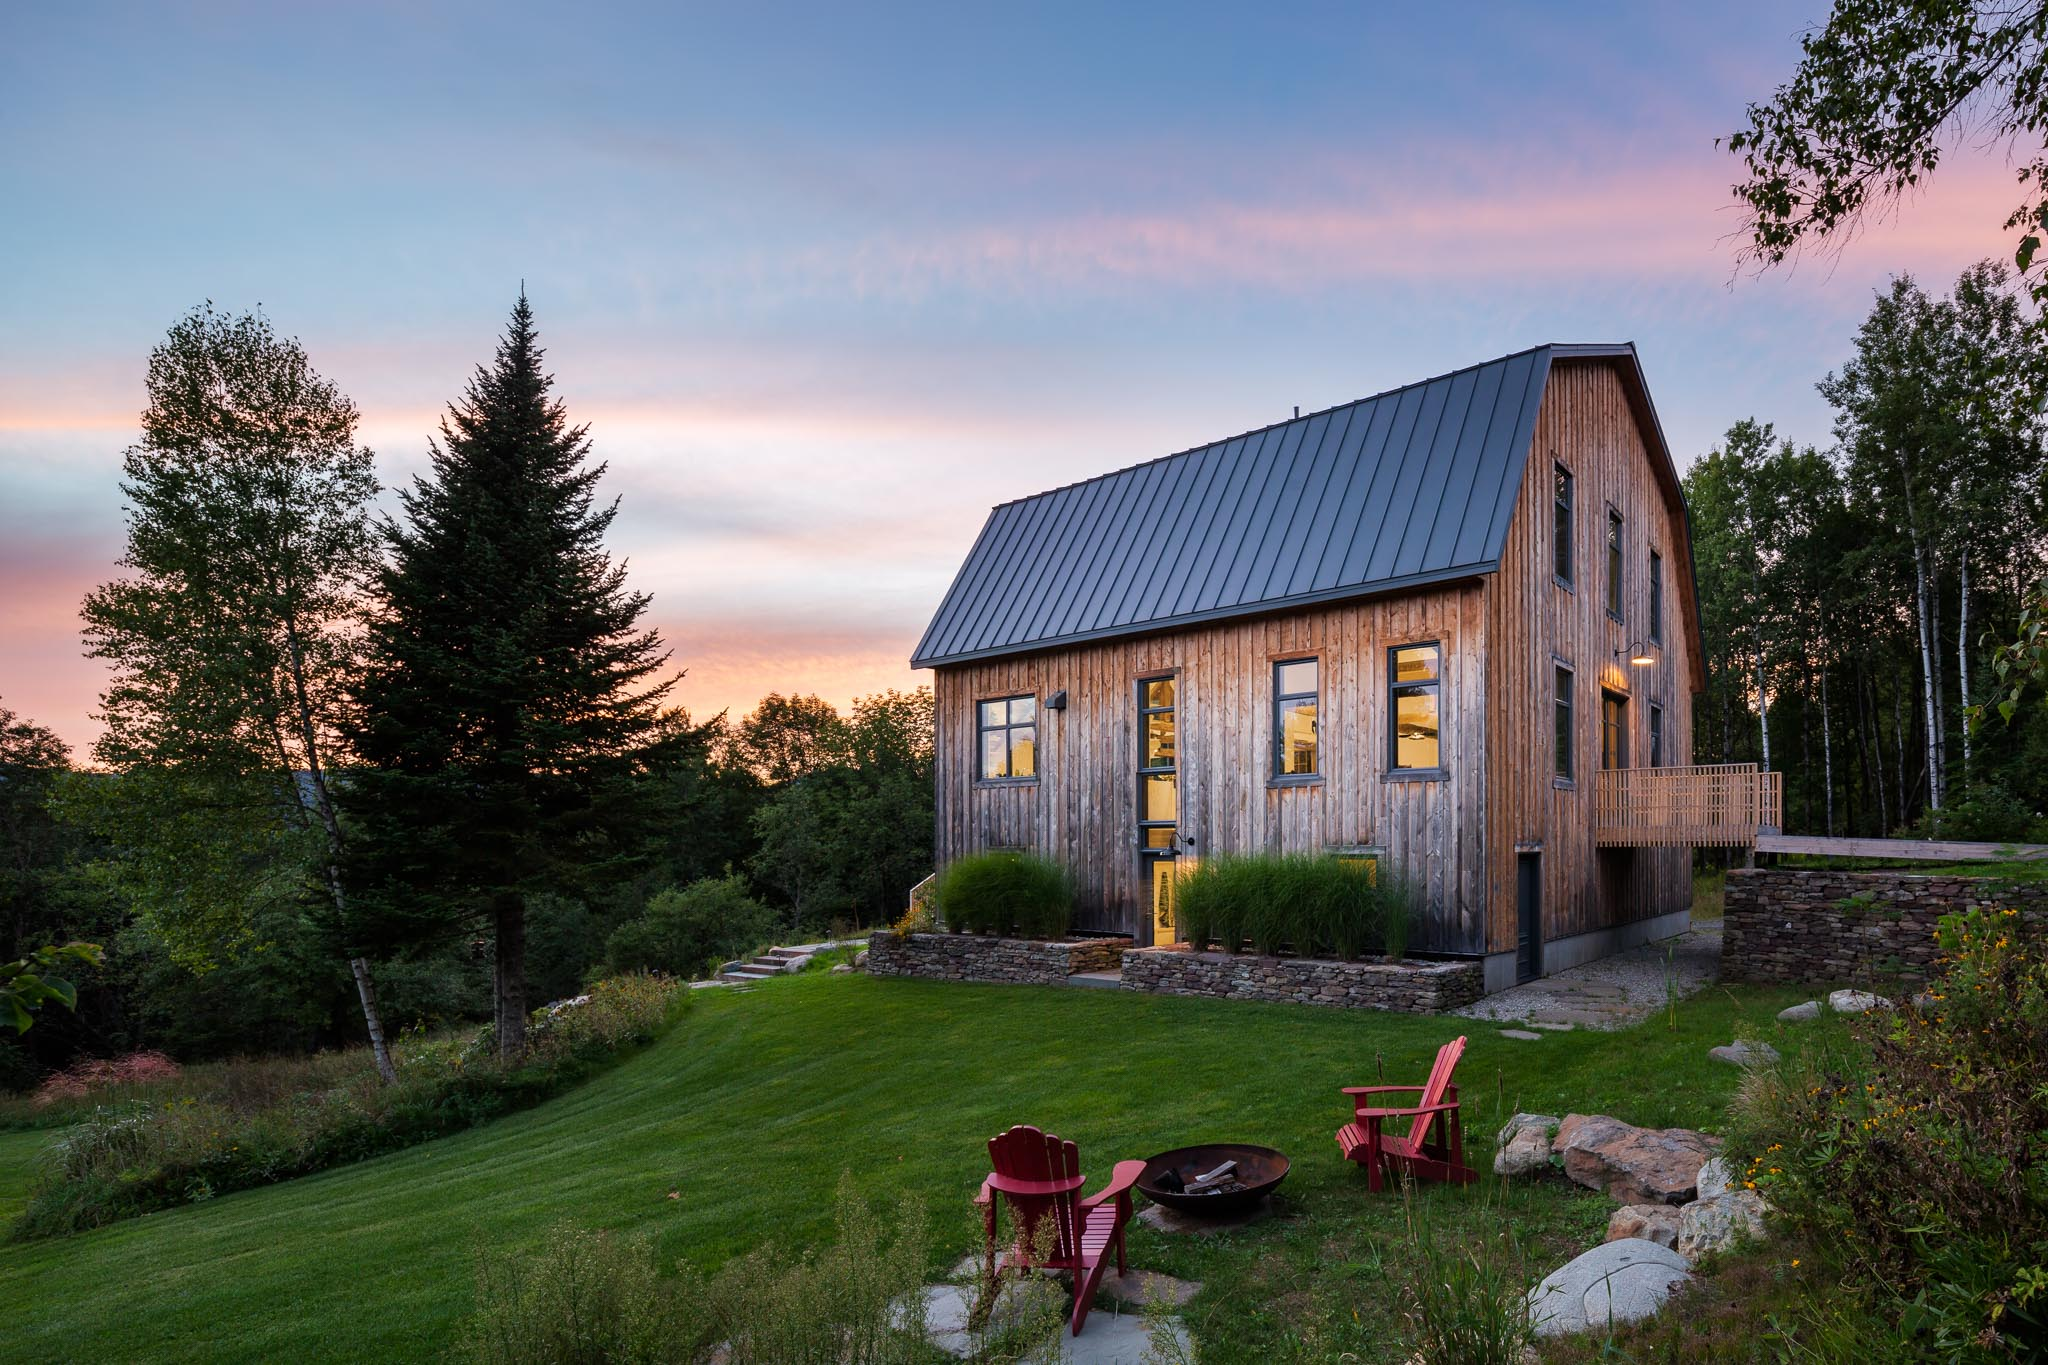 Renovation of a cottage in the Eastern Townships. Footbridge leading to the main entrance. Exterior cladding of boards of cedar boards and batten. Architecture inspired by a barn